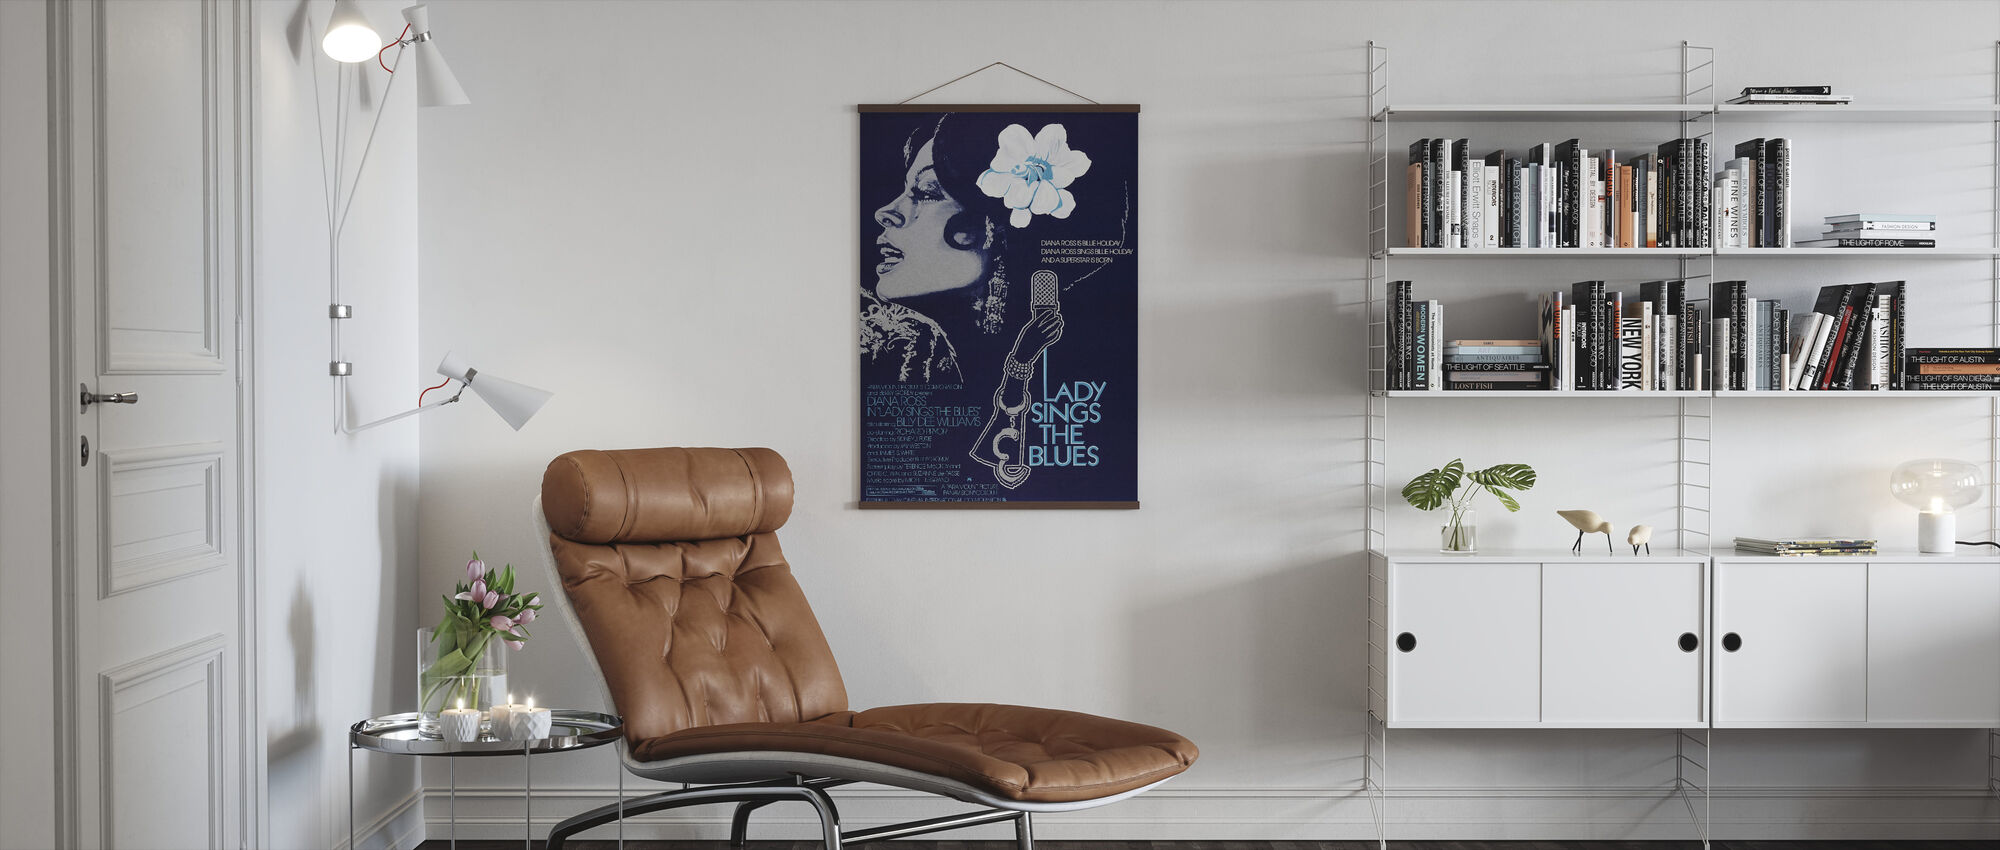 Lady Sings the Blues - Poster - Living Room